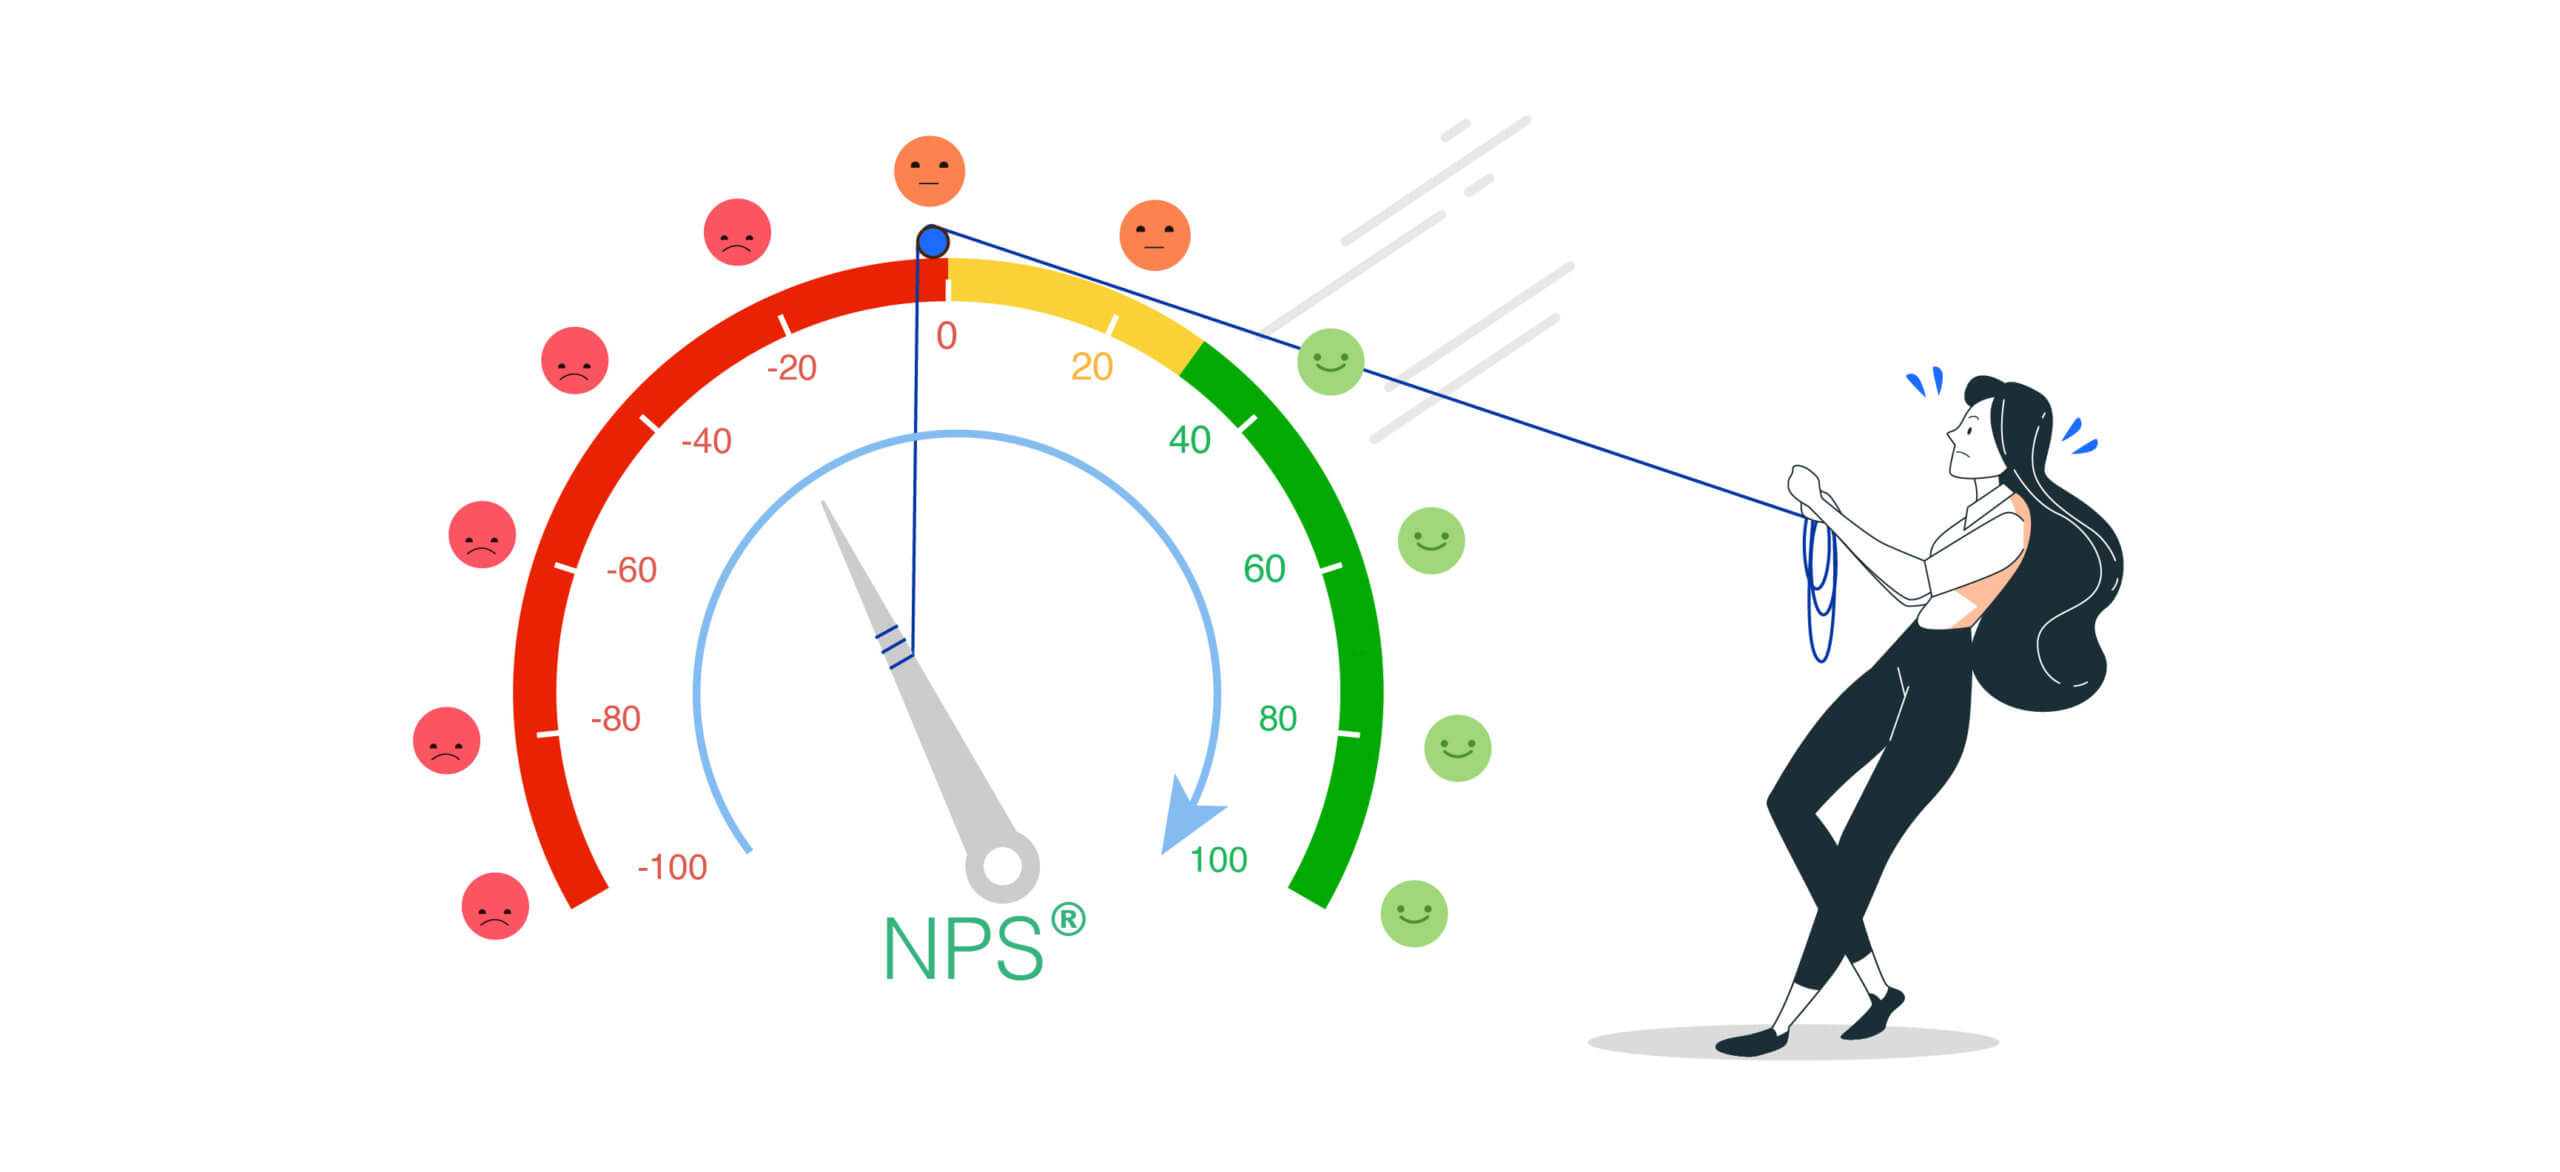 7 ways to Improve your Net Promoter Score by SurveySensum